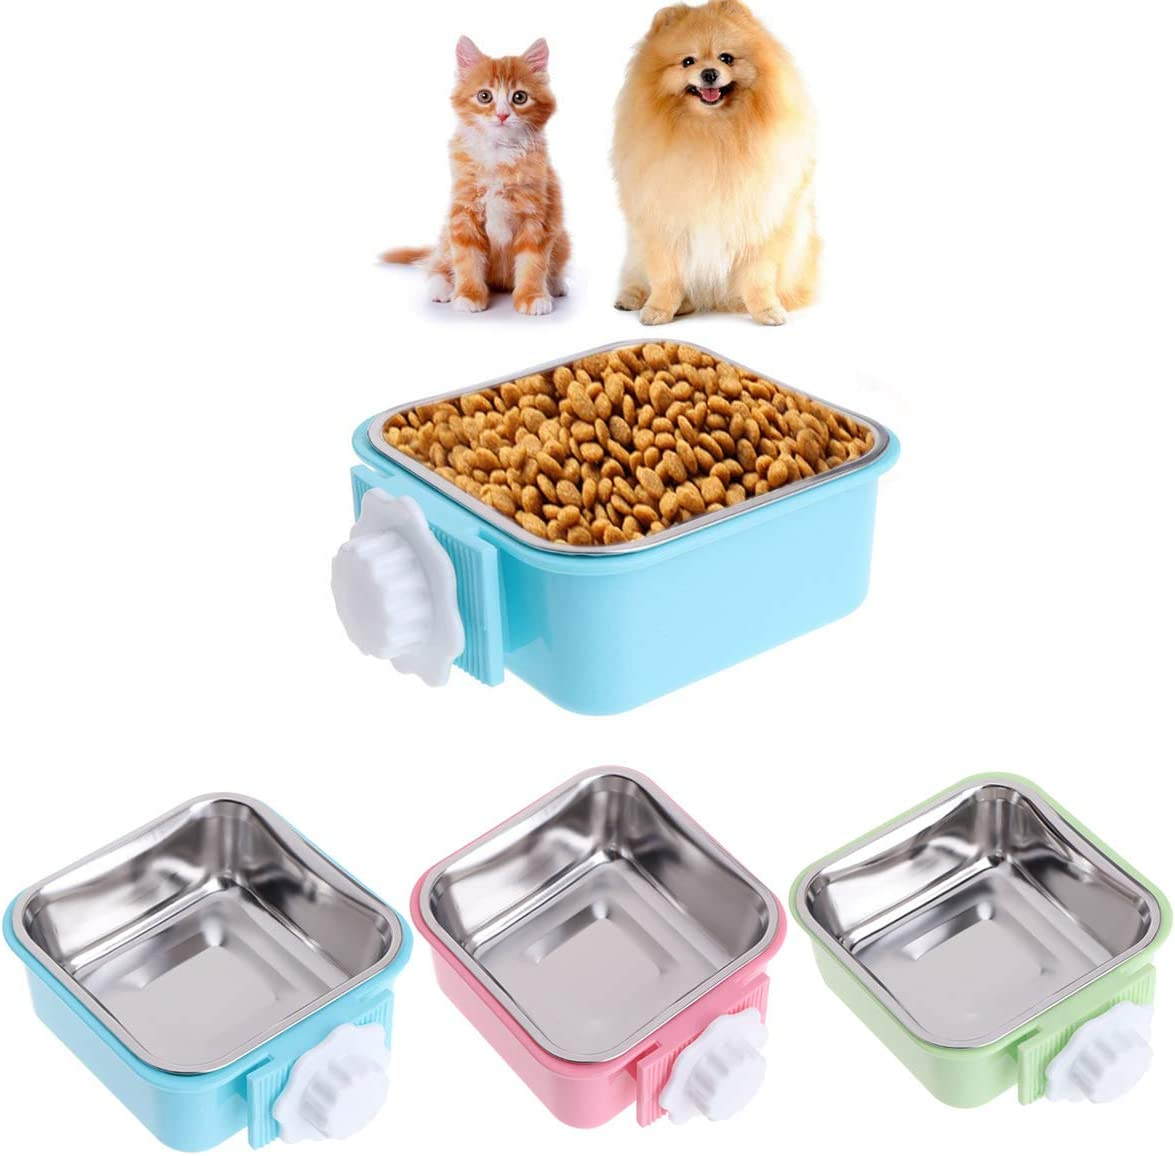 Luck Dawn Cat Crate Bowl, Stainless Steel Removable Cage Hanging Bowls with Bolt Holder for Dog Puppy